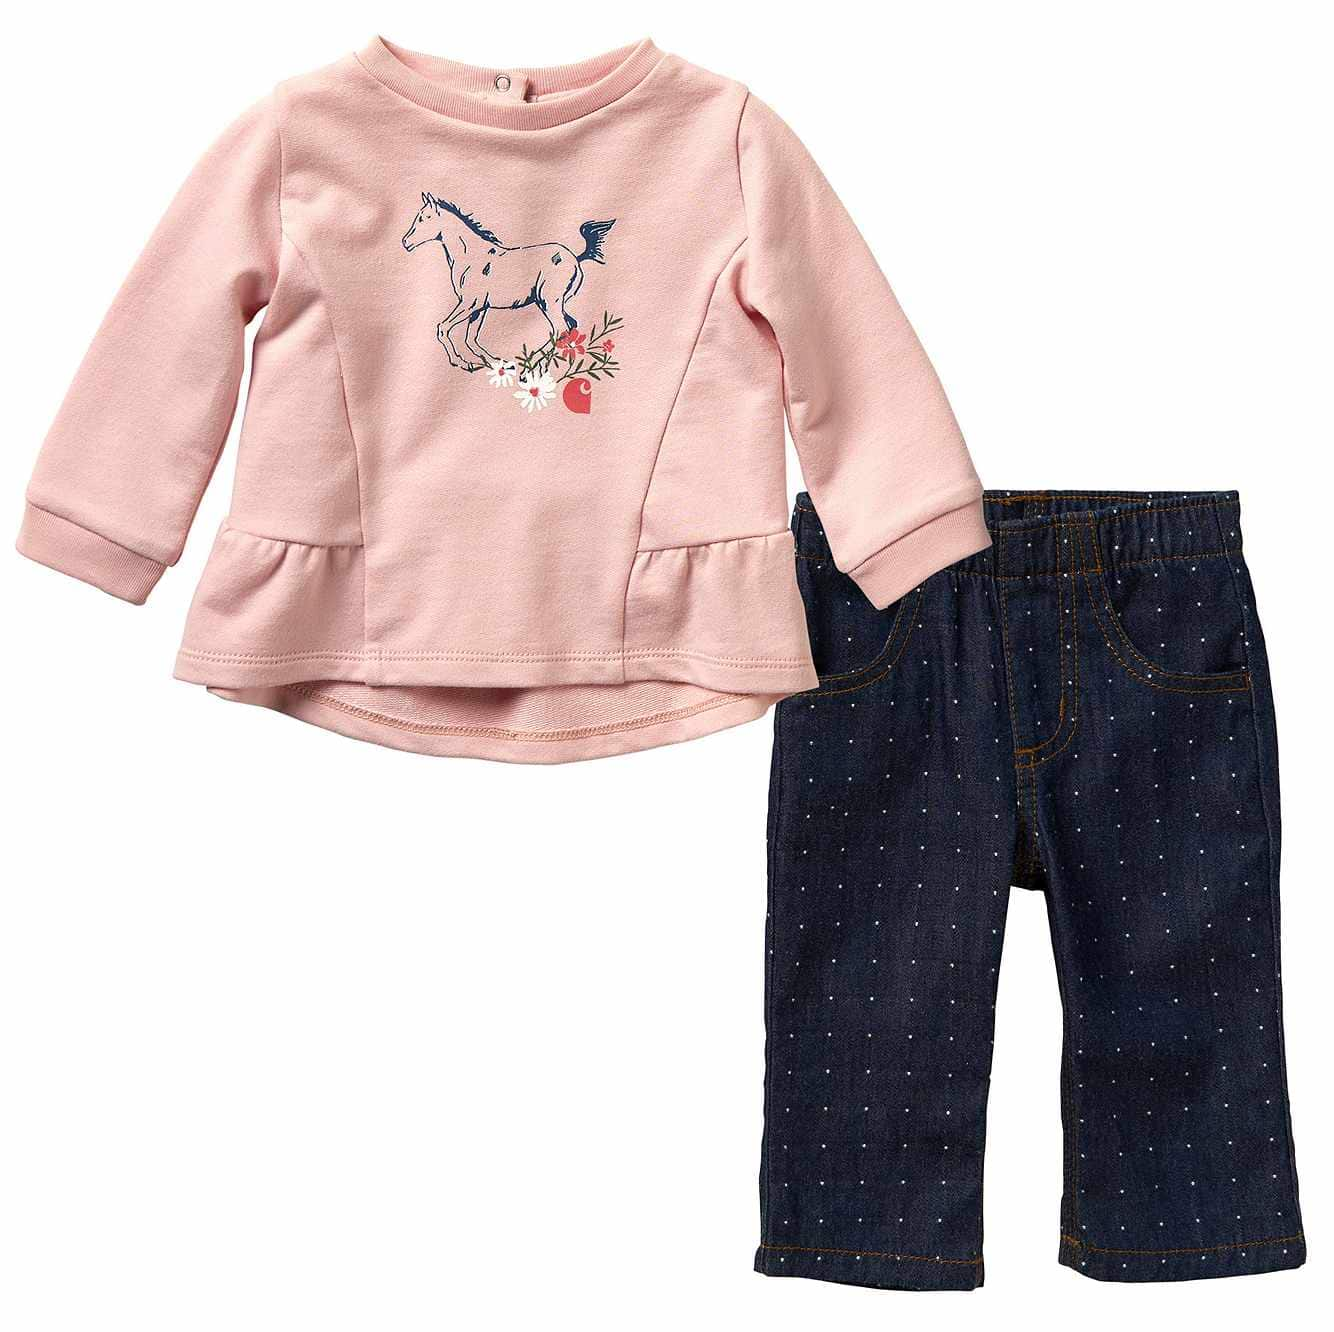 Picture of 2-Piece Dobby Pant Set in Medium Wash